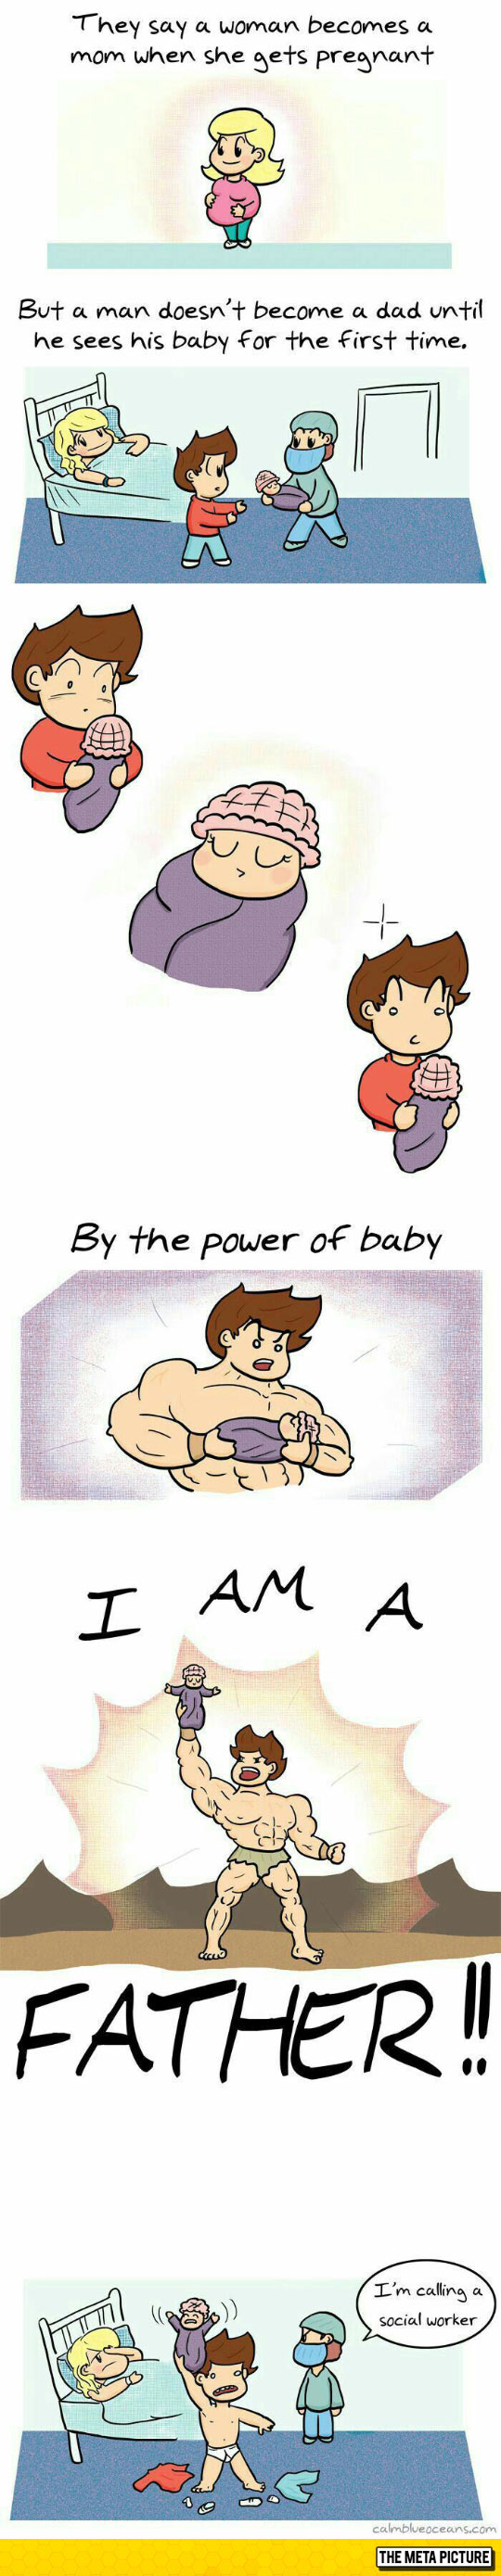 funny-baby-woman-man-becomes-father